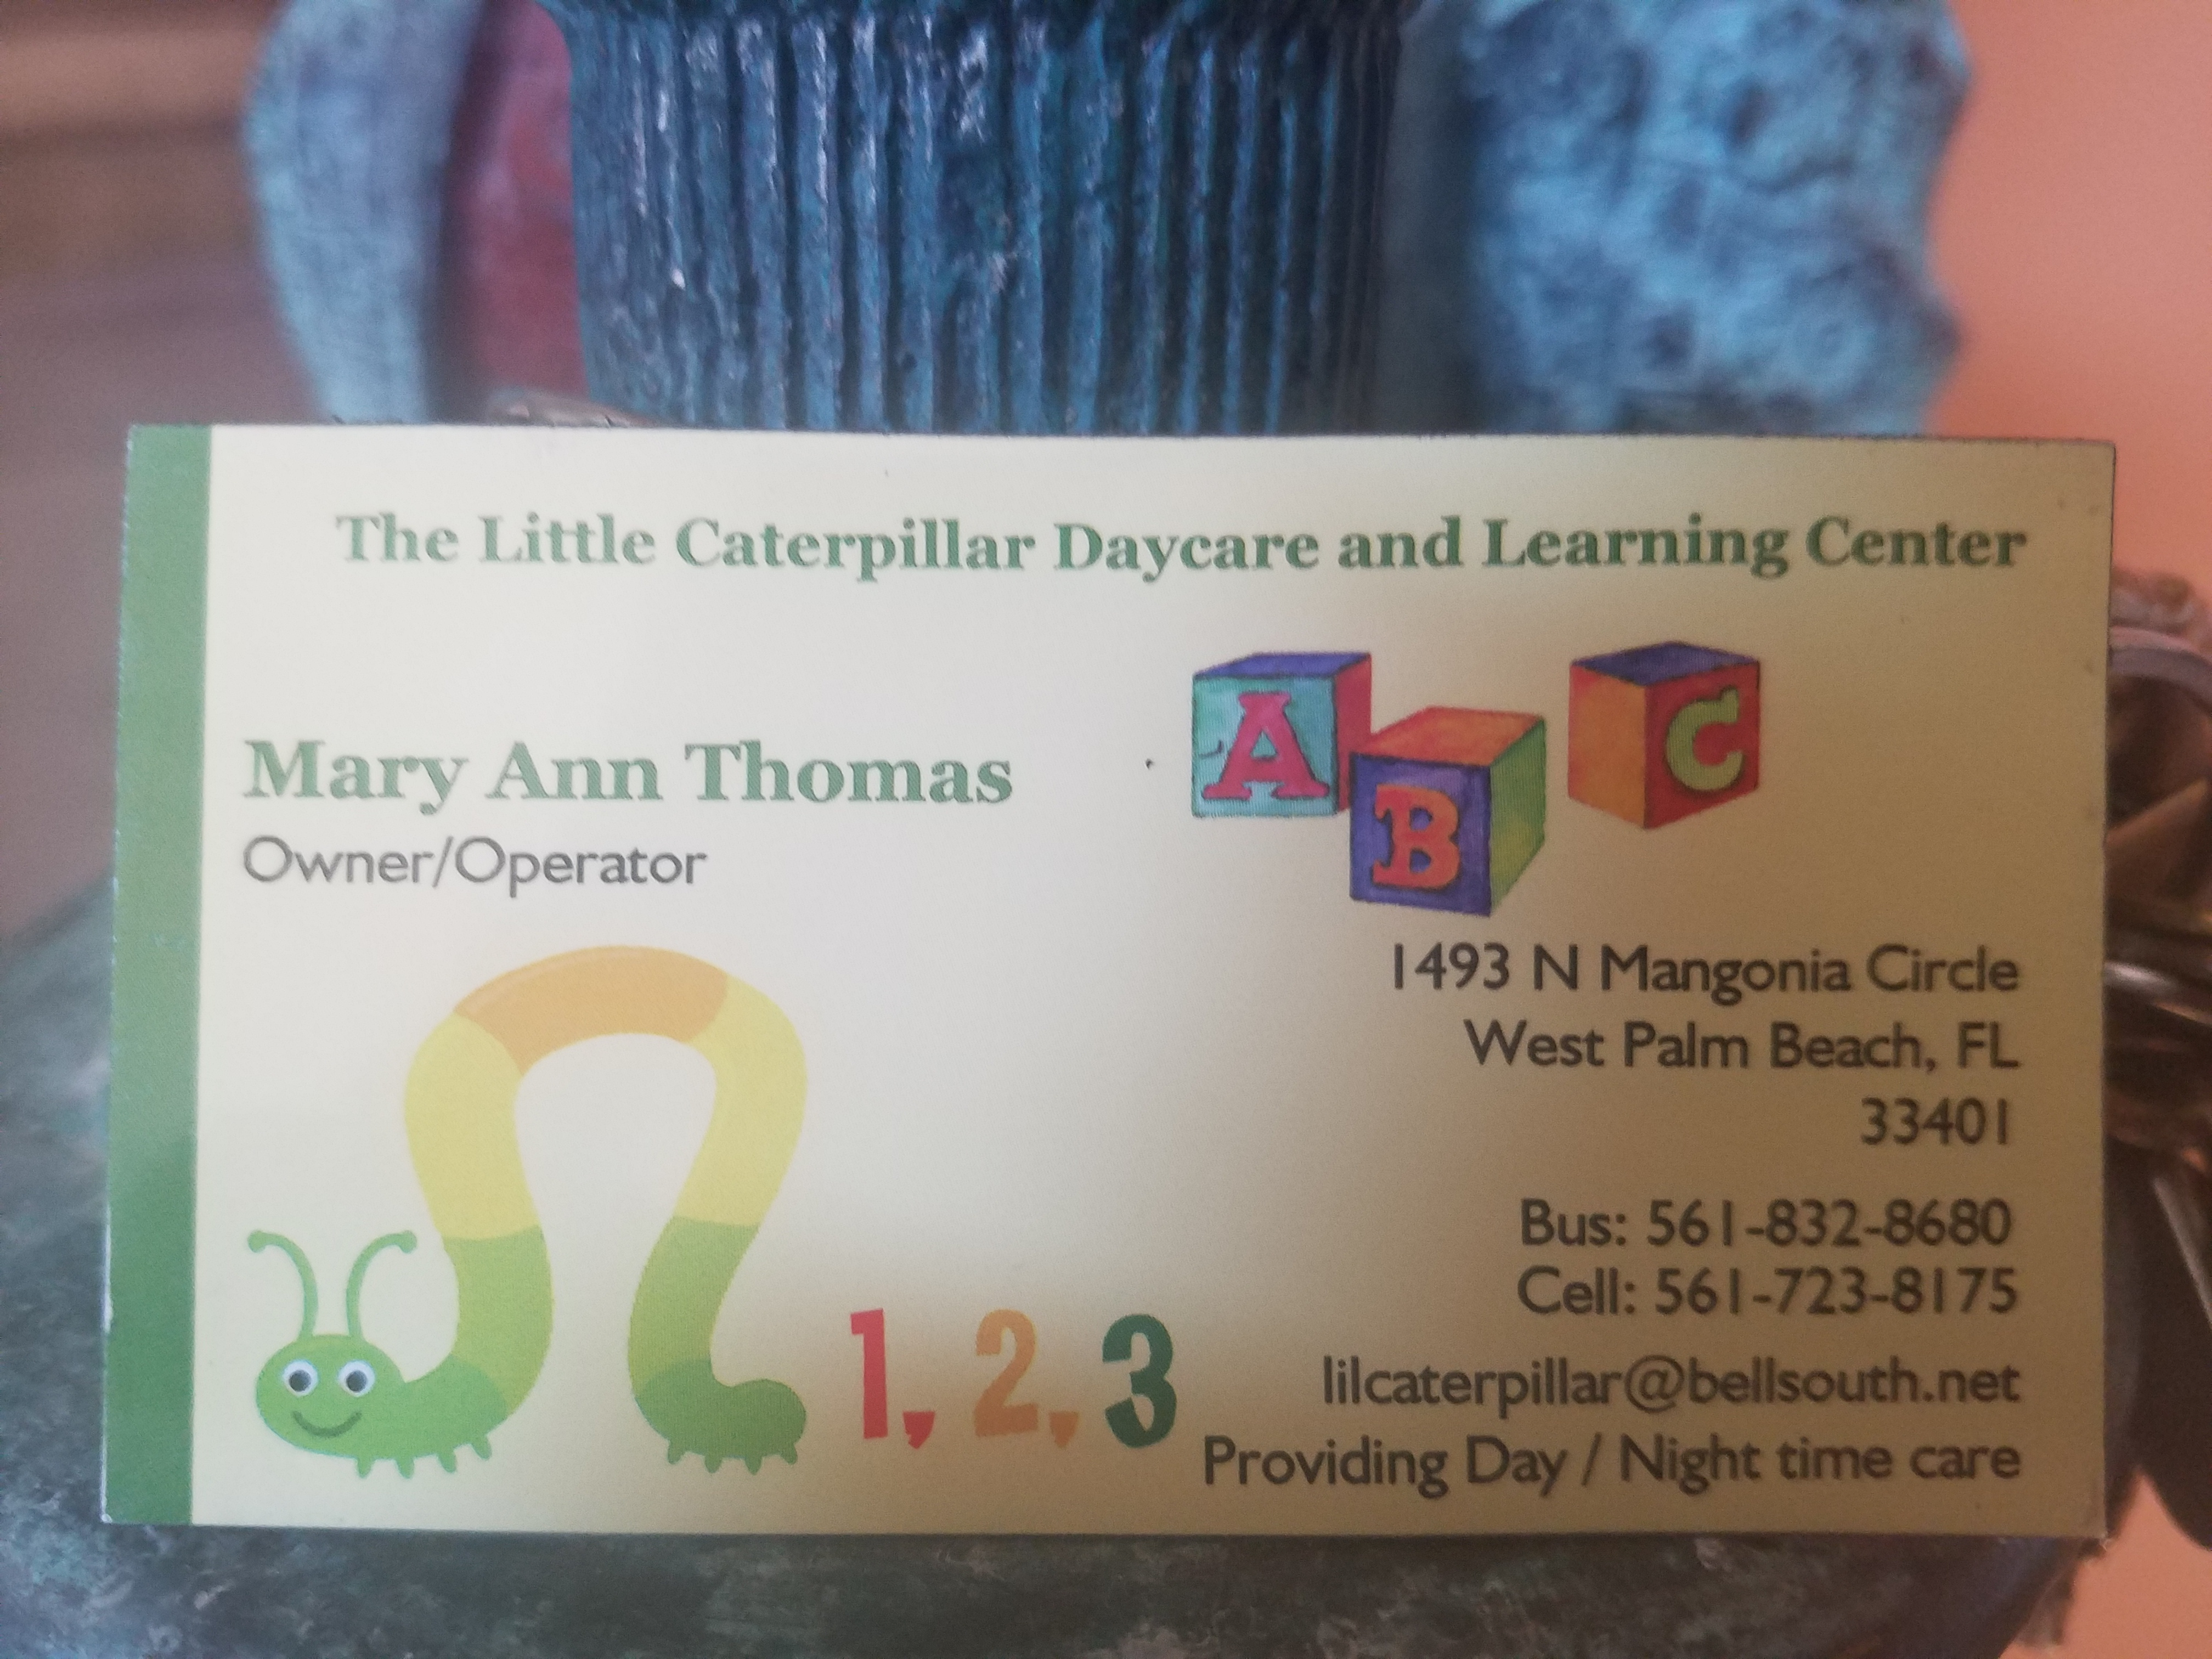 THE LITTLE CATEPILLAR DAY CARE AND LEARNING CENTER